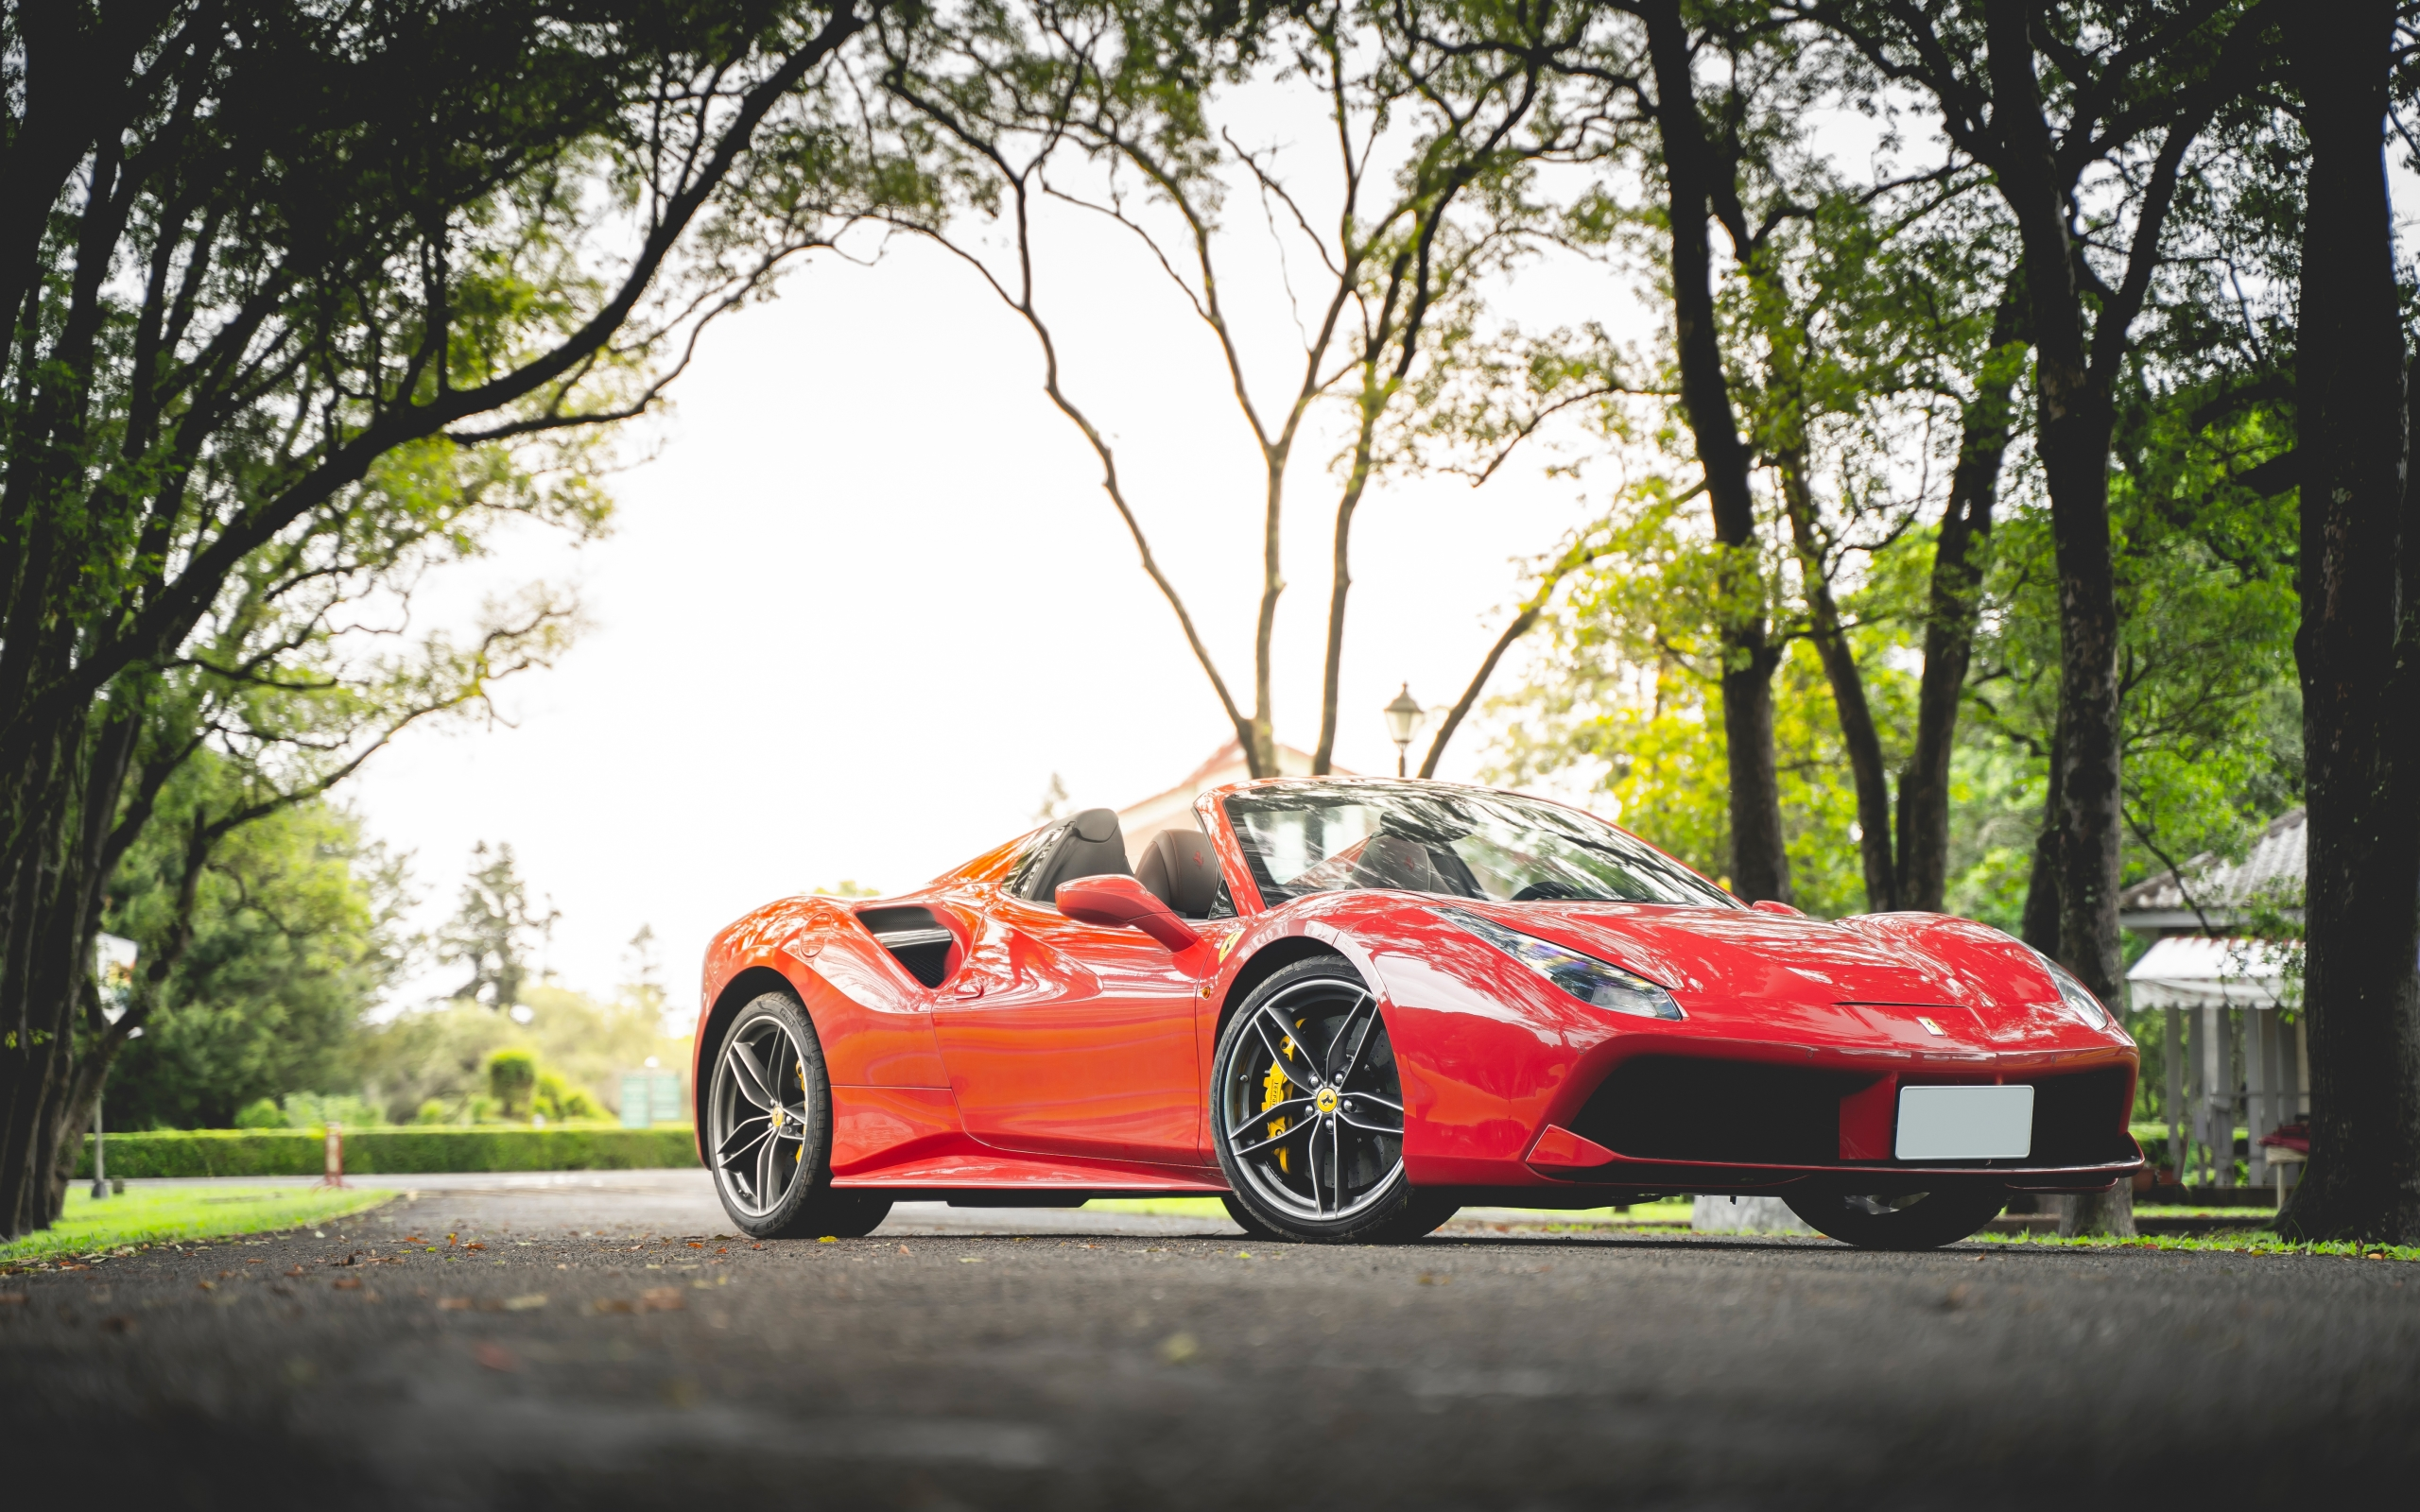 Wallpaper Of Ferrari Ferrari 488 Spider Red Car Ferrari 458 2100886 Hd Wallpaper Backgrounds Download